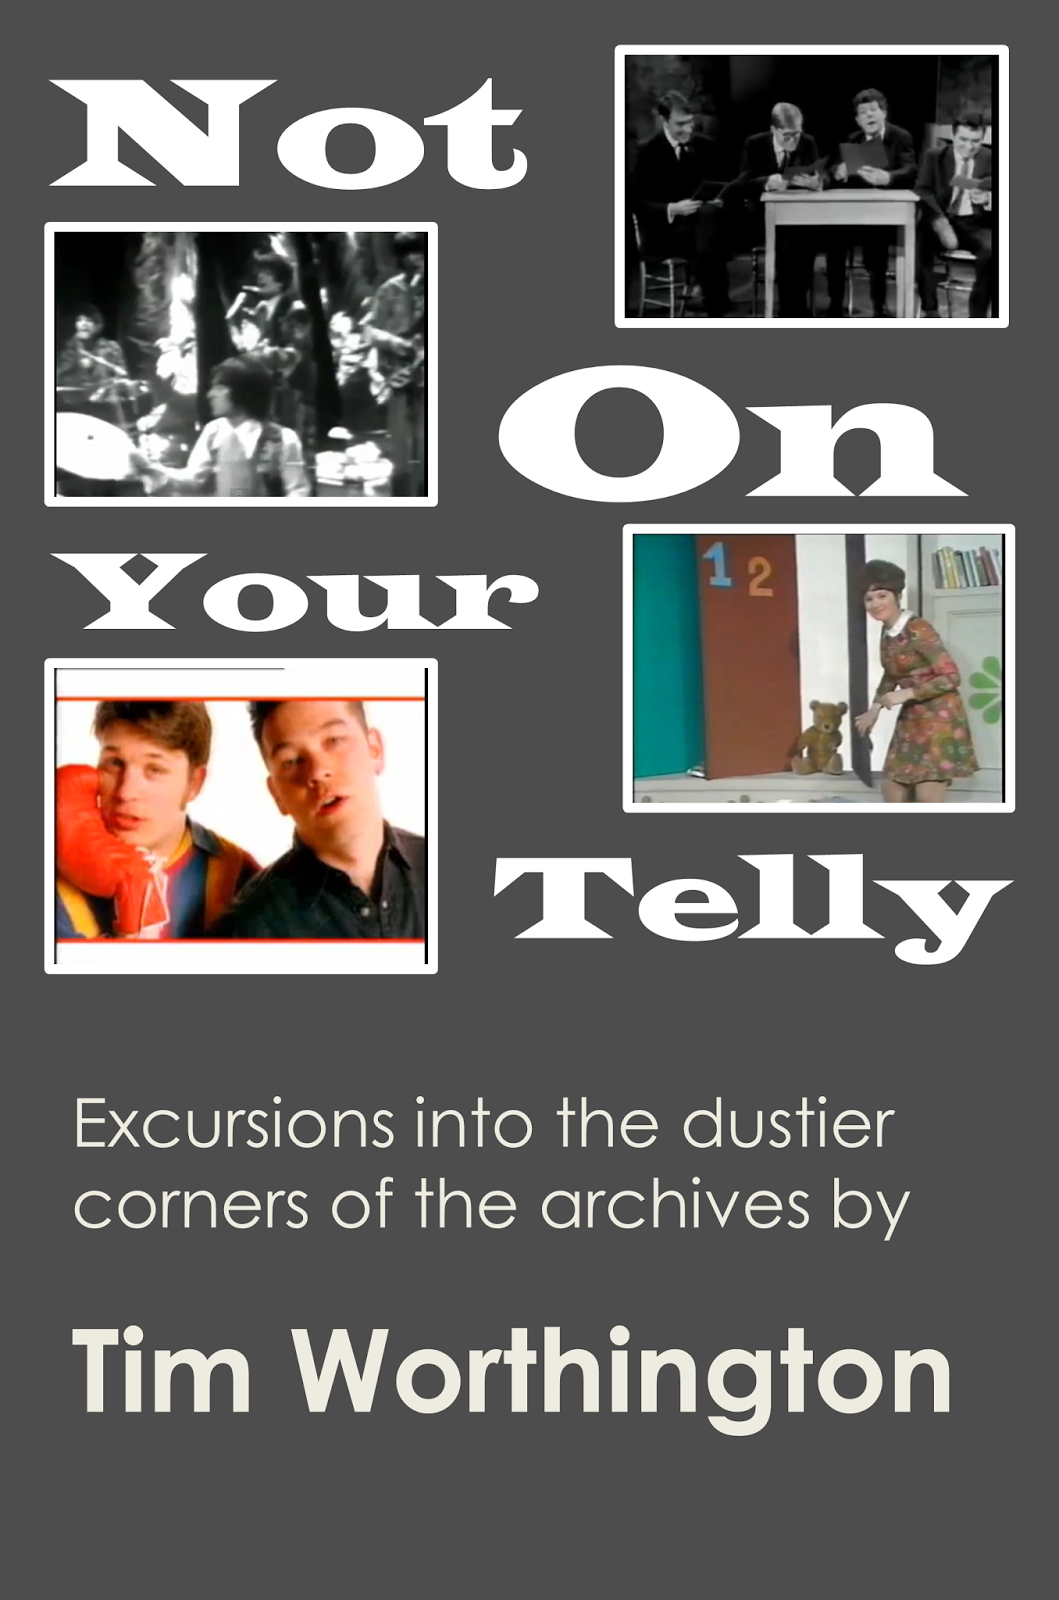 Tim worthingtons newsround february 2014 not on your telly a book collecting some of my articles on the archive television we never get to see is available in paperback here or as an ebook here fandeluxe Images